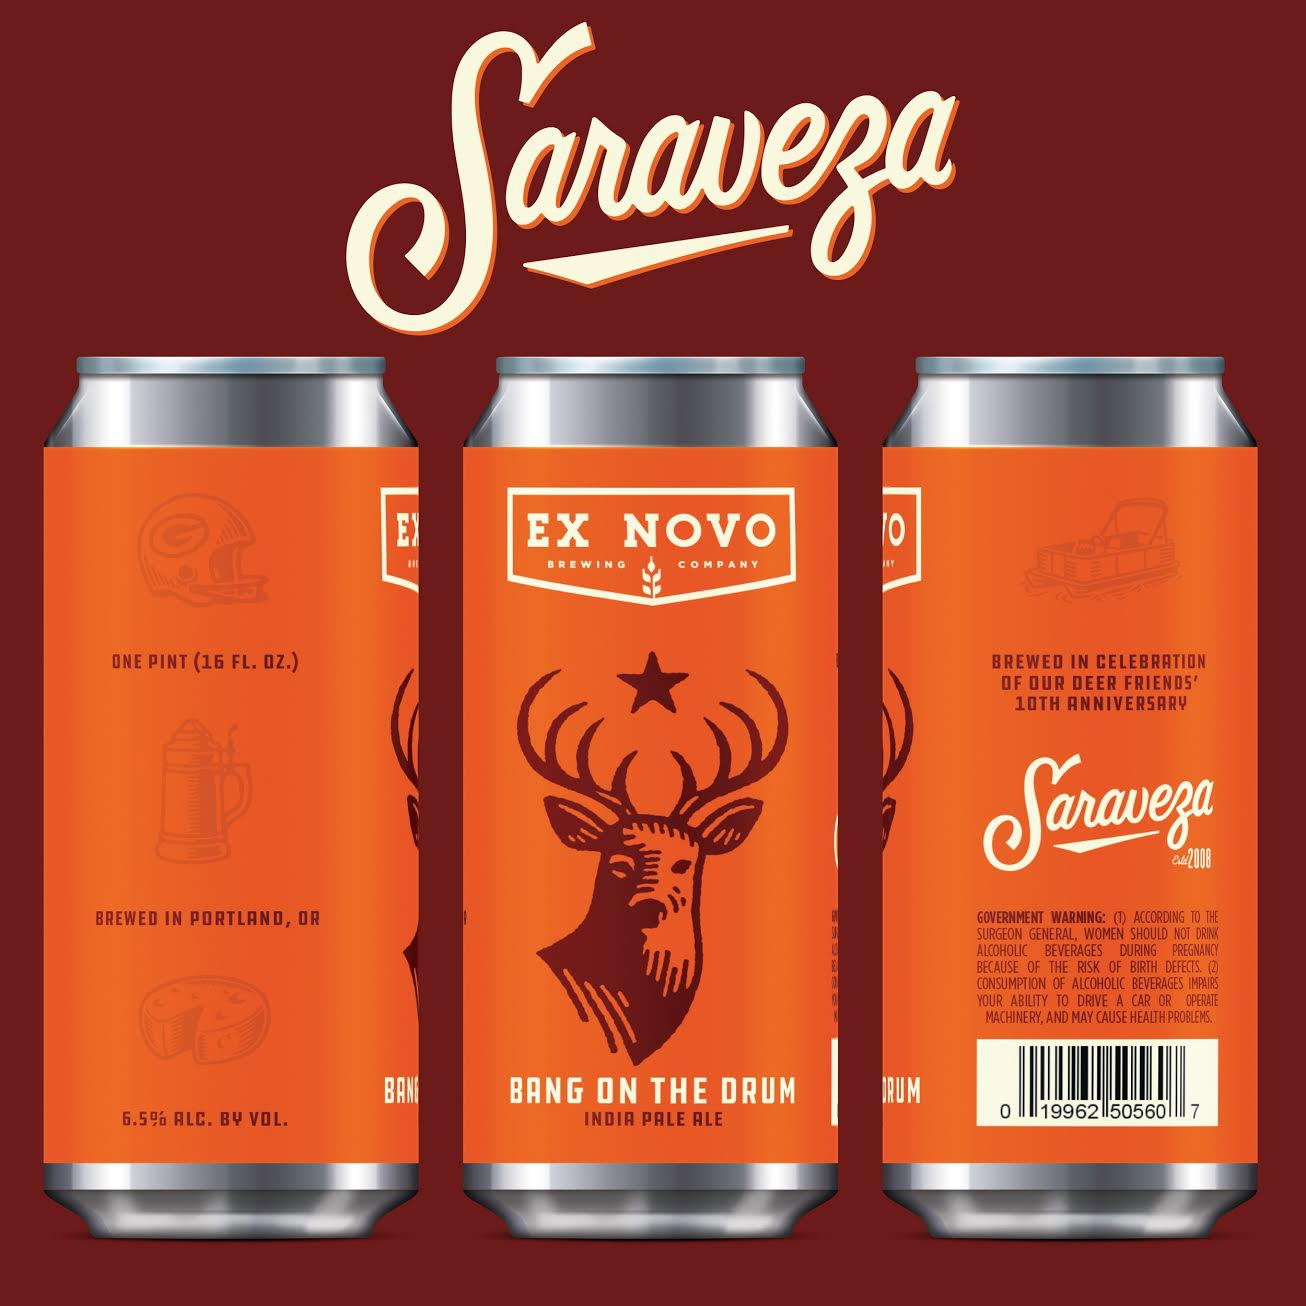 Ex Novo Brewing Bang On The Drum IPA for Saraveza's 10th Anniversary